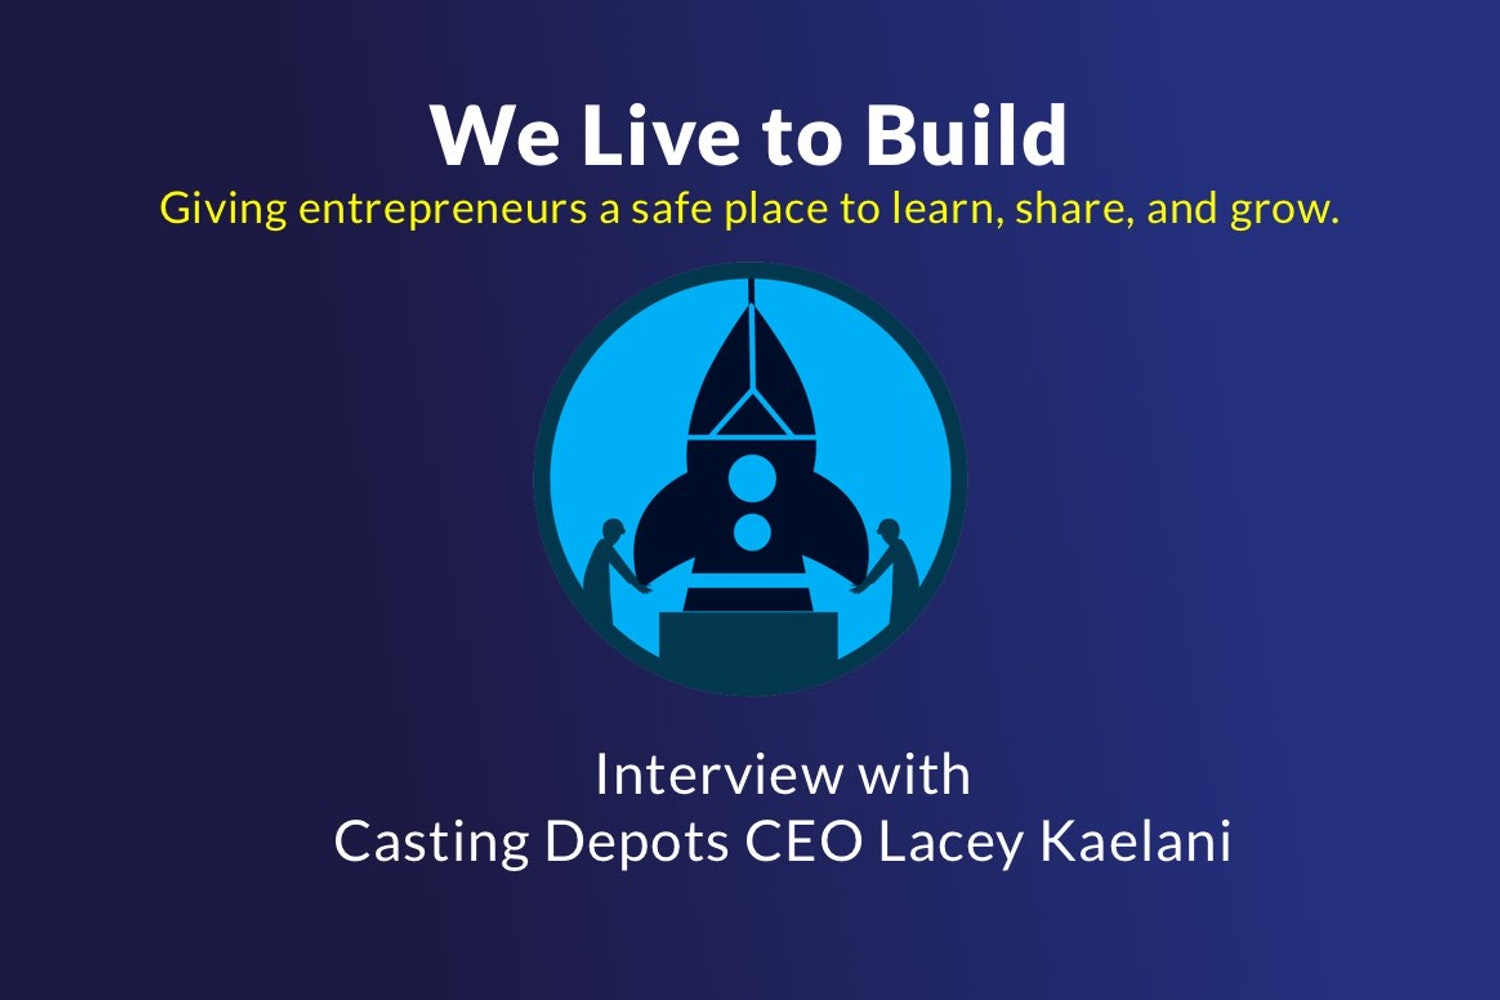 Cover Image for We Live to Build - Interview with Casting Depots CEO Lacey Kaelani